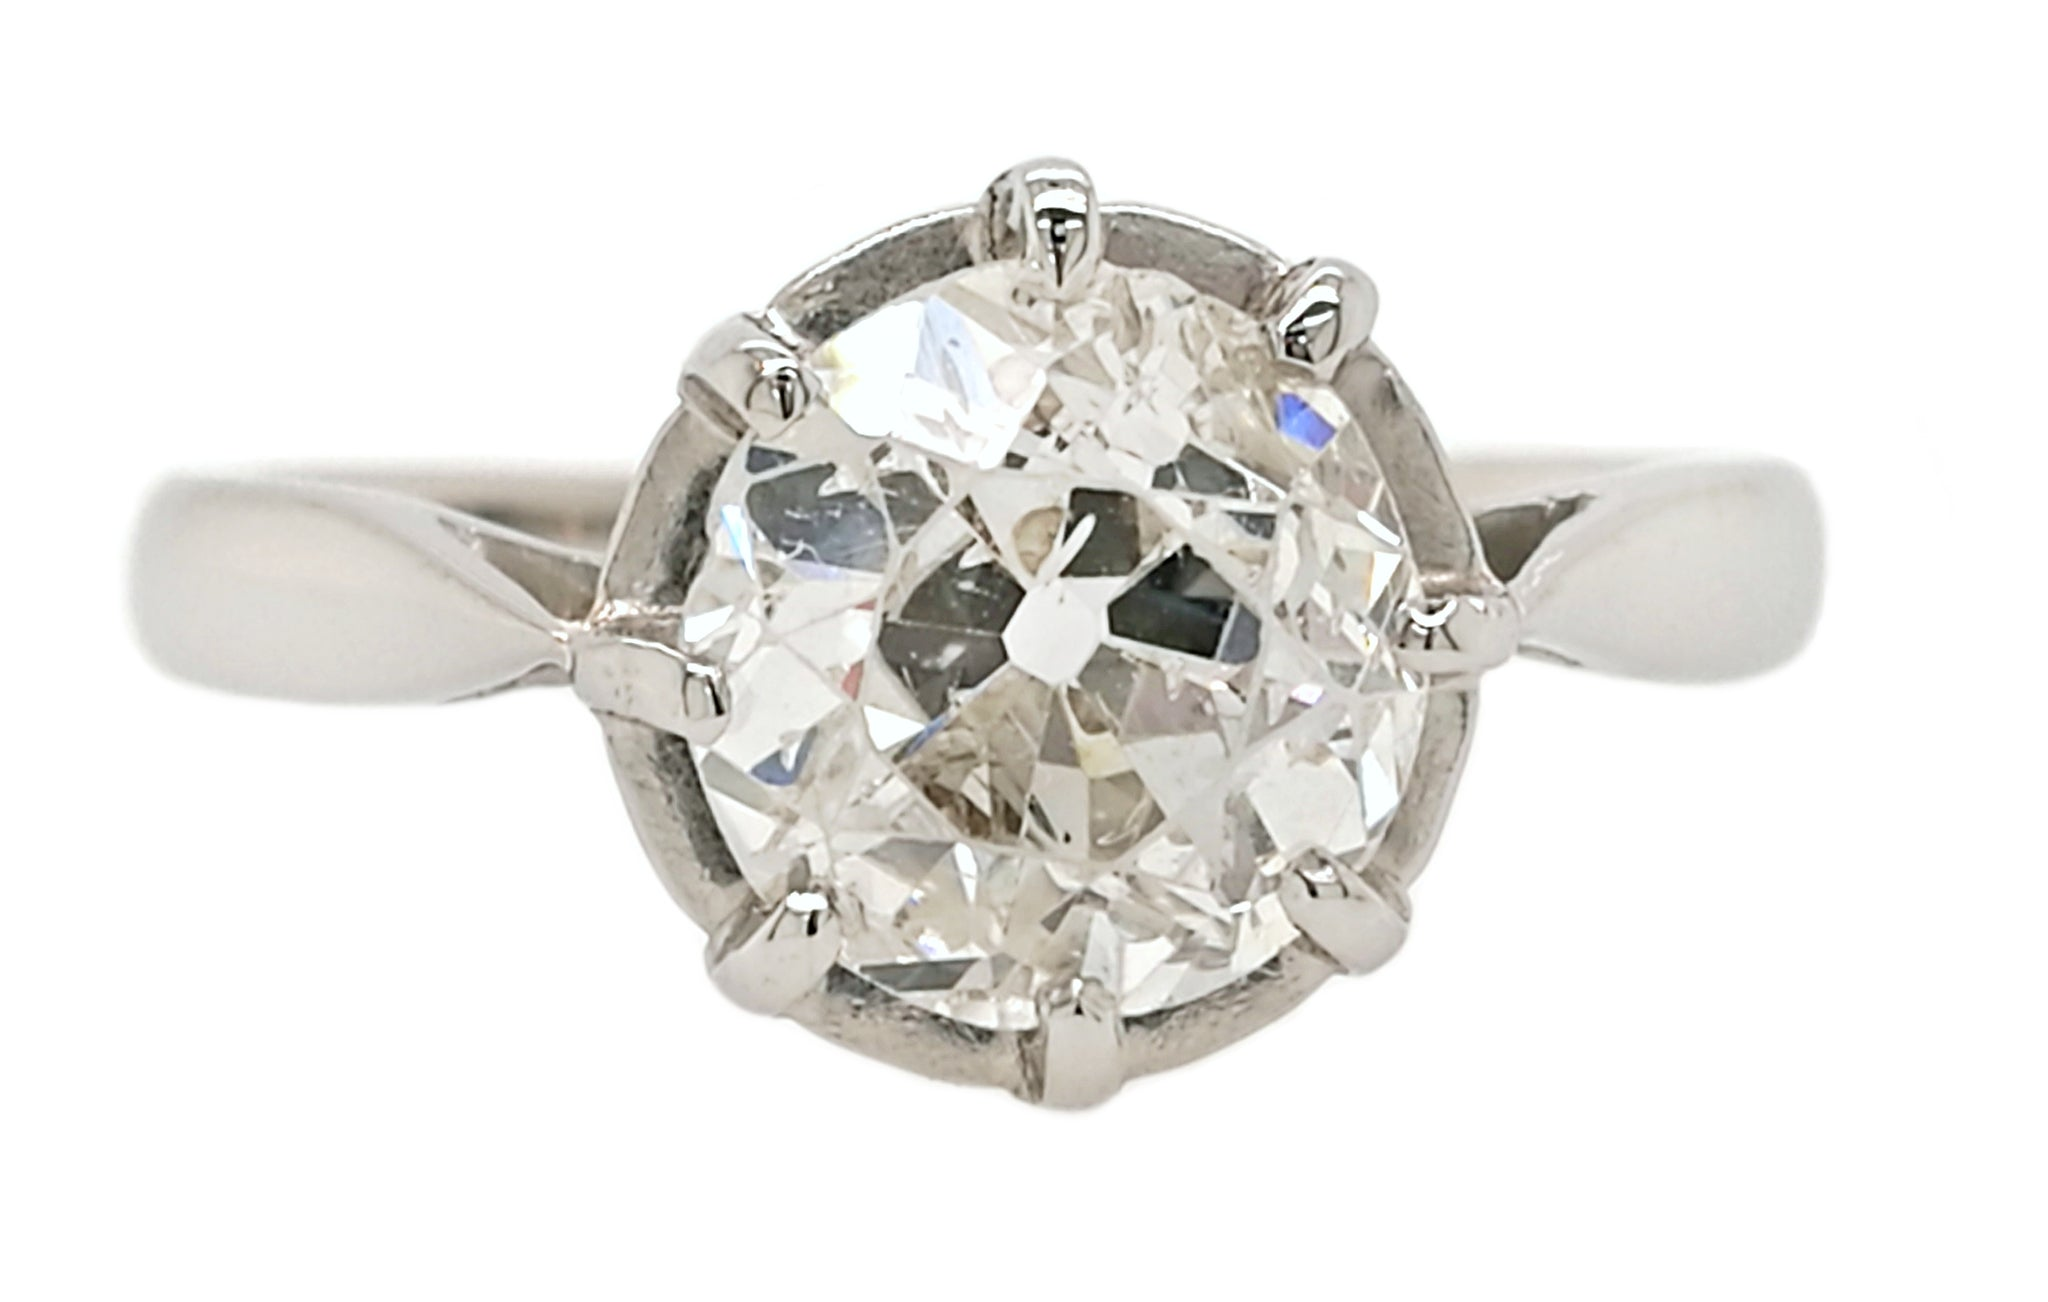 1920s Antique French 1.51ct Old Cut Diamond Engagement Ring in Platinum